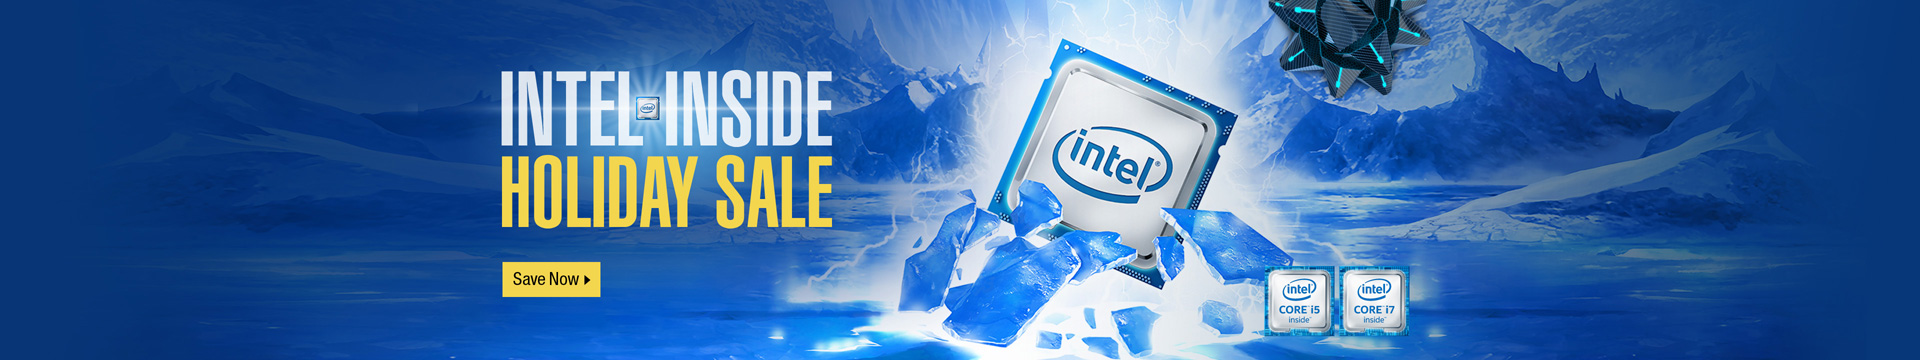 Intel Inside Holiday Sale